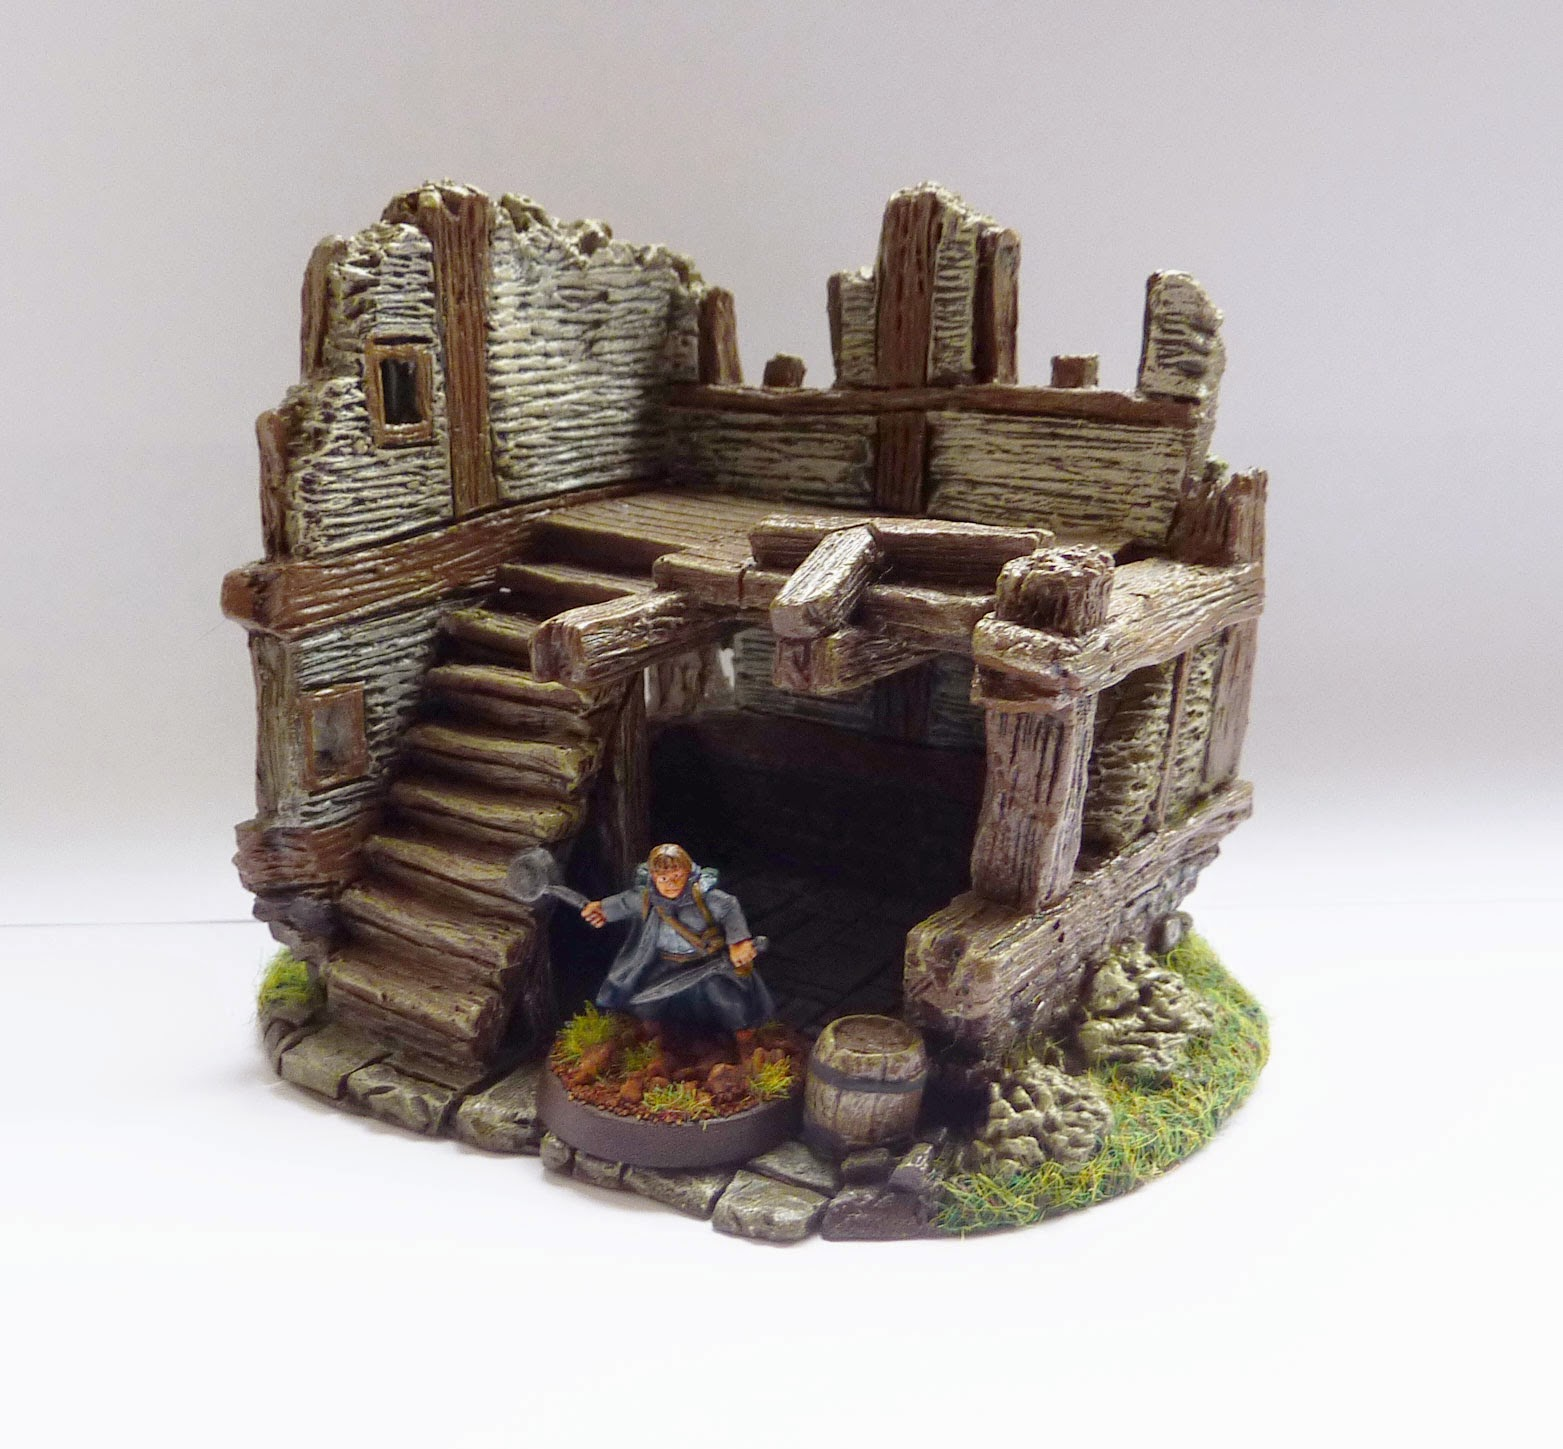 Resin-cast painted ruined buildings